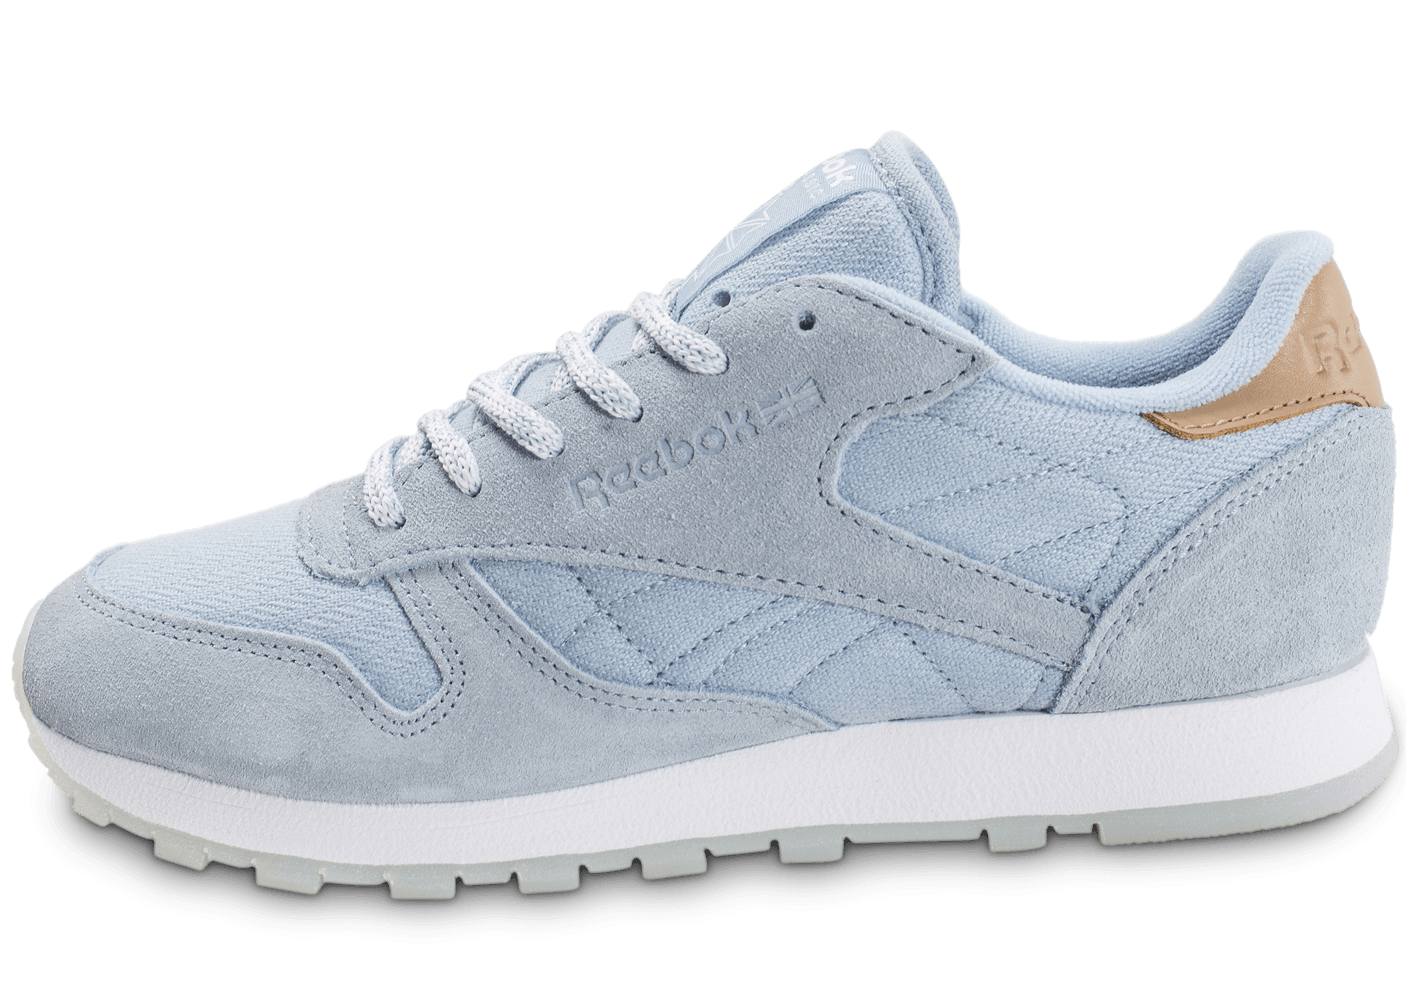 Chaussures Reebok Royal bleues fille swKRl6Th71